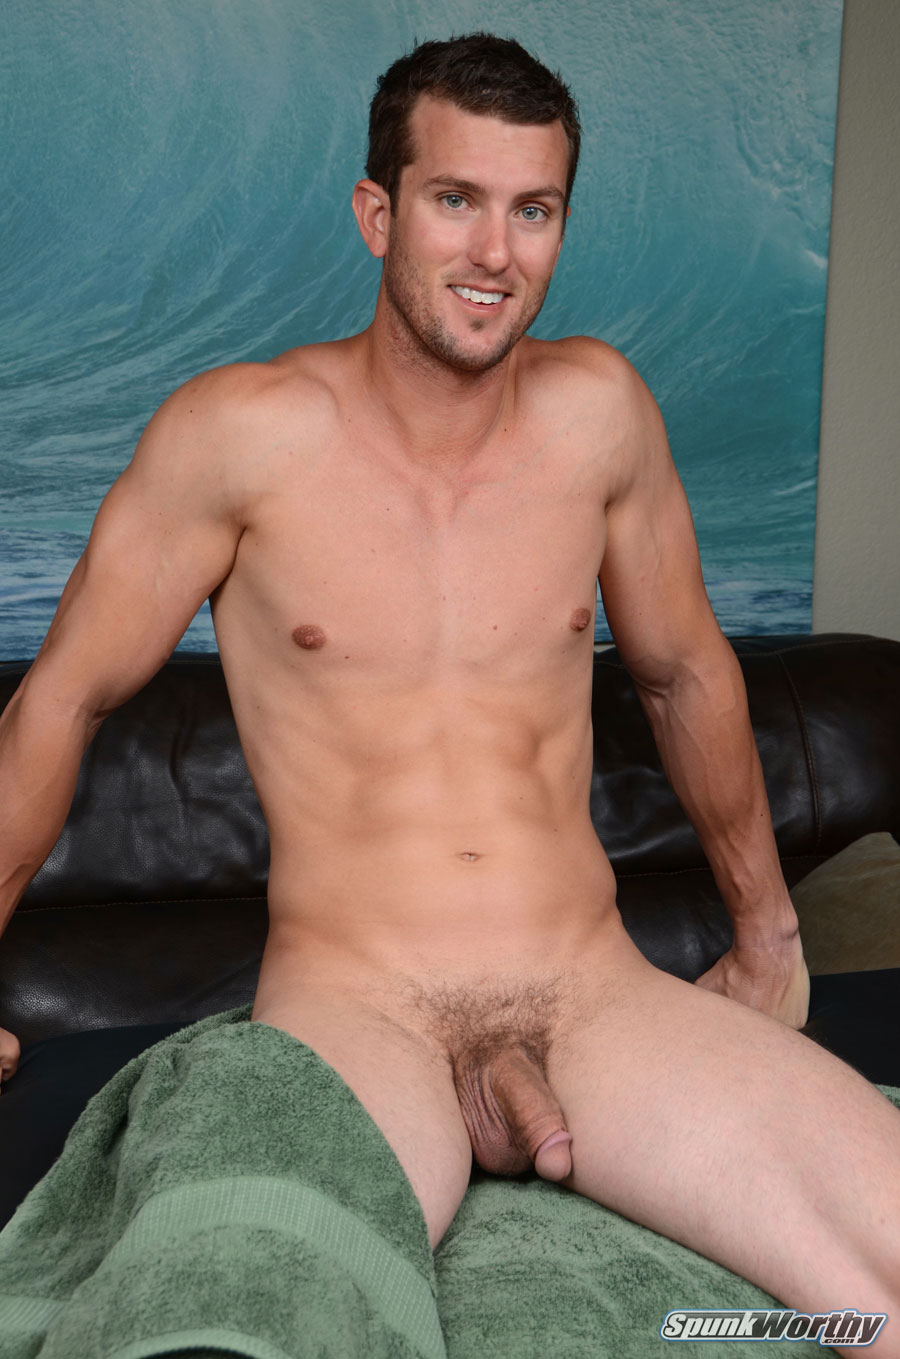 SpunkWorthy Tommy Straight Guys First Blow Job From A Gay Guy Massage Amateur Gay Porn 03